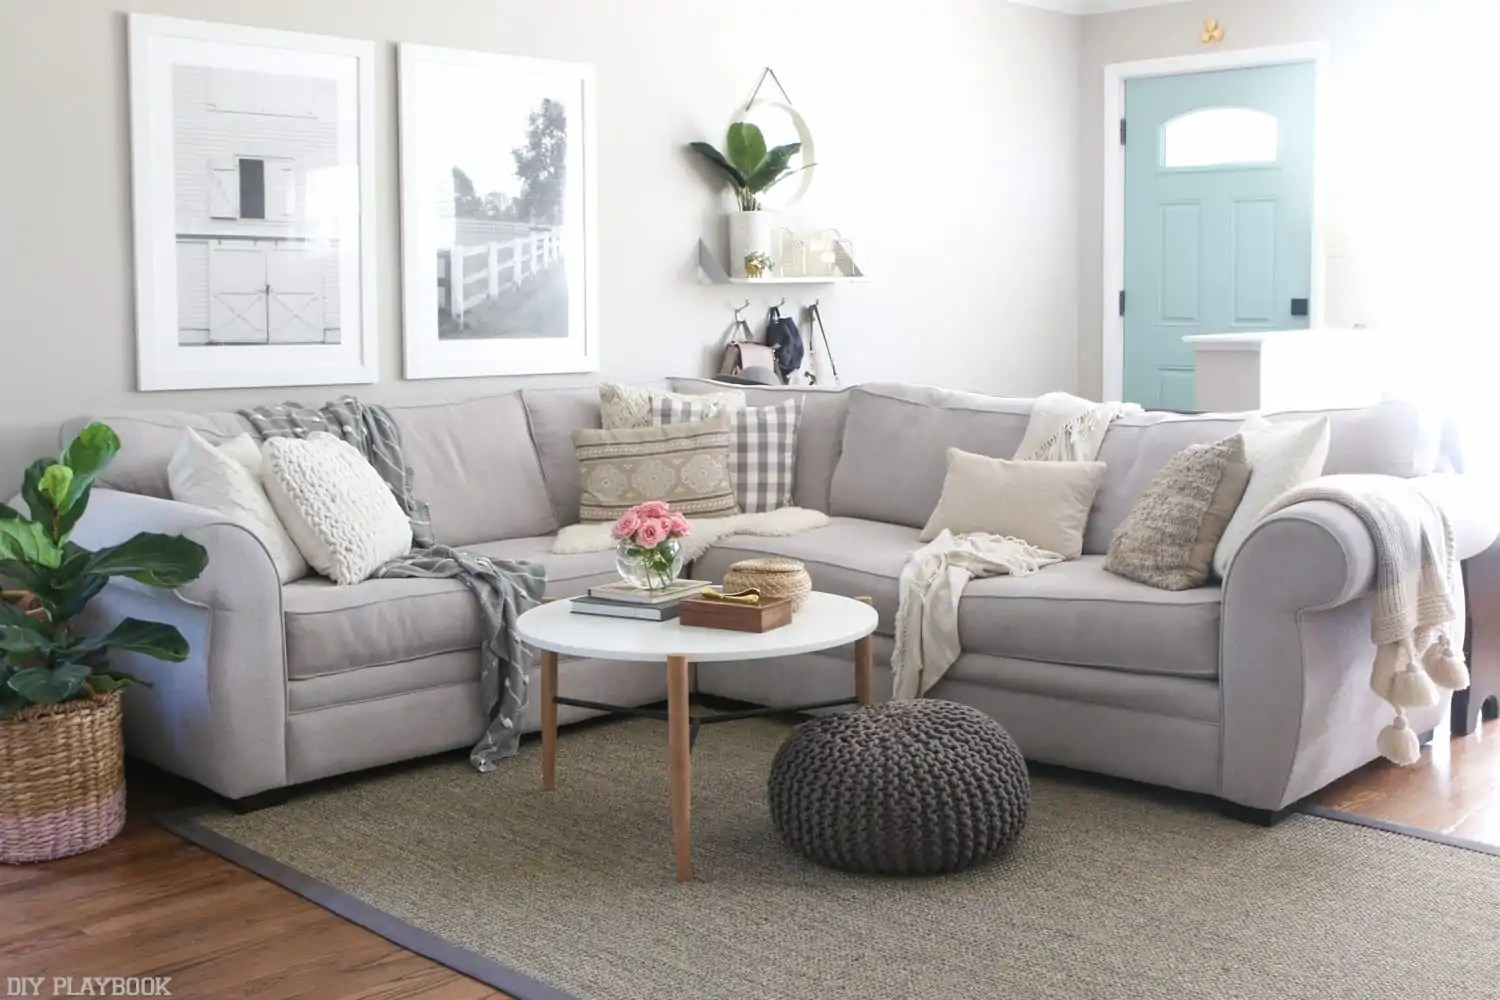 Best Kitchen Gallery: How To Clean Couch Cushions In Four Easy Steps The Diy Playbook of Couch Cushions  on rachelxblog.com